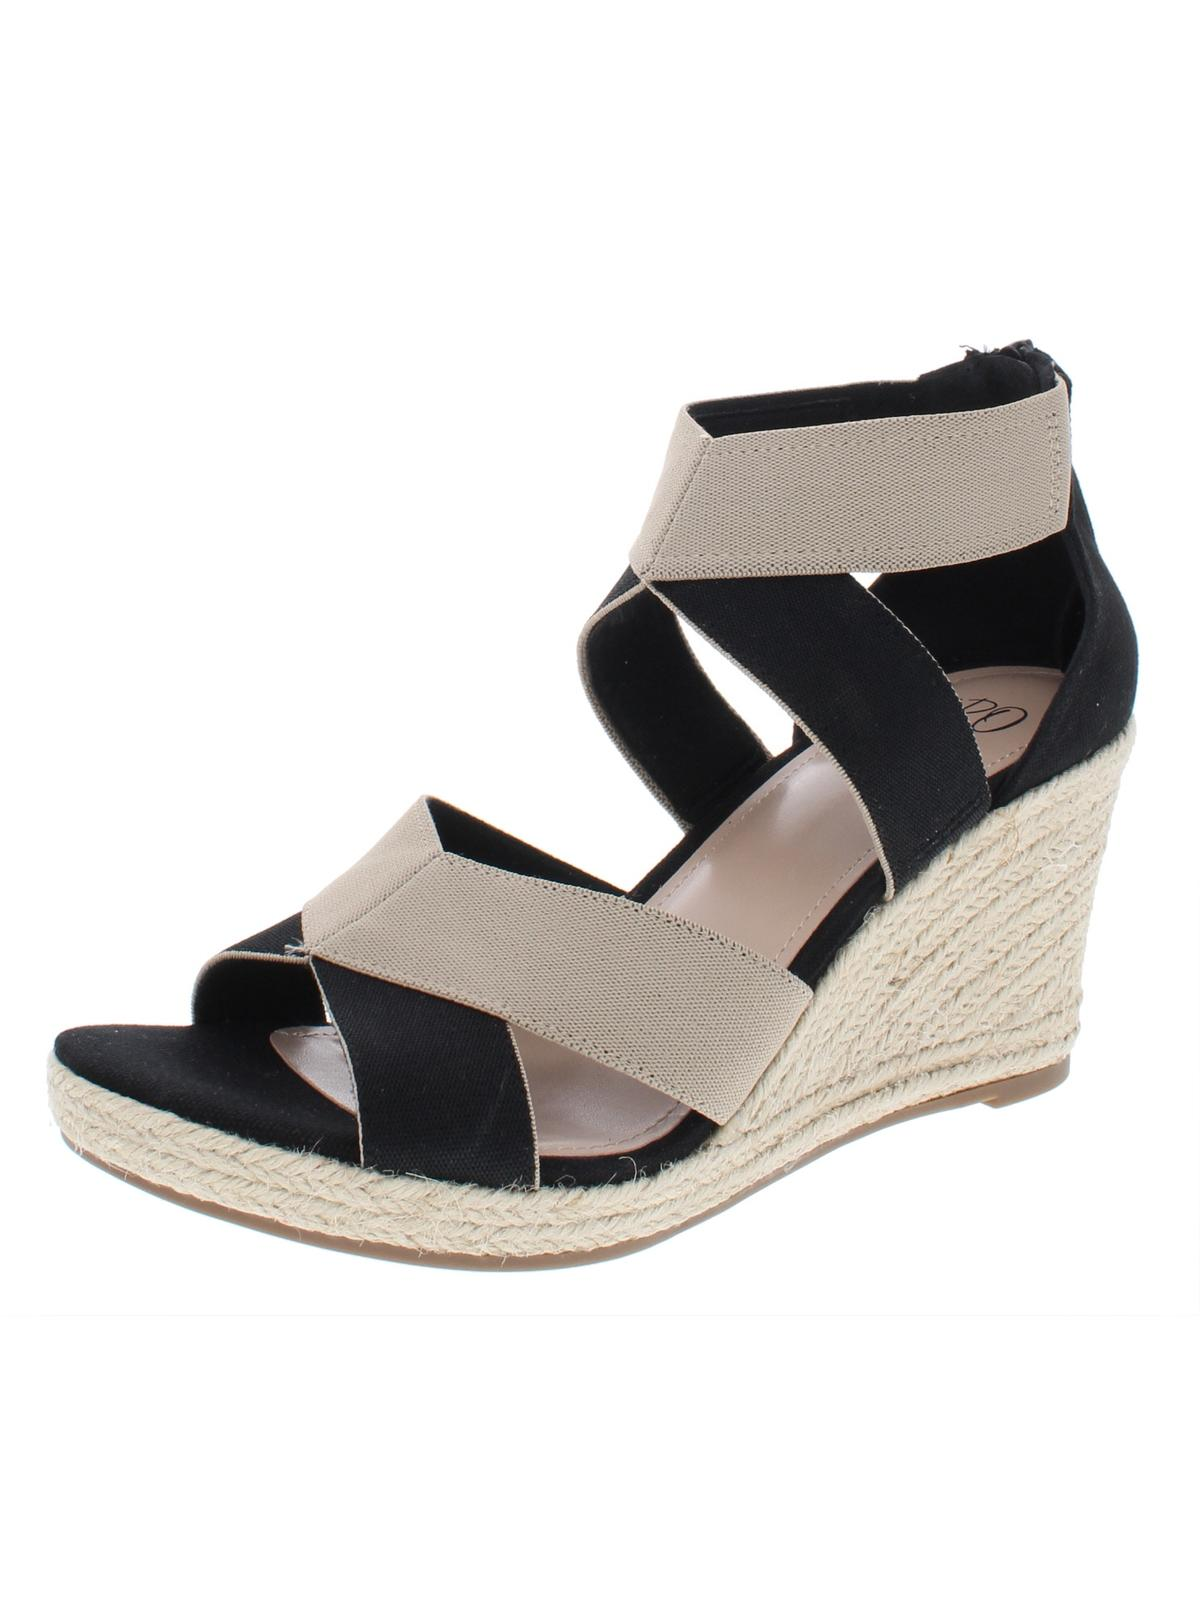 Impo Womens Timber Sandals Strappy Espadrilles